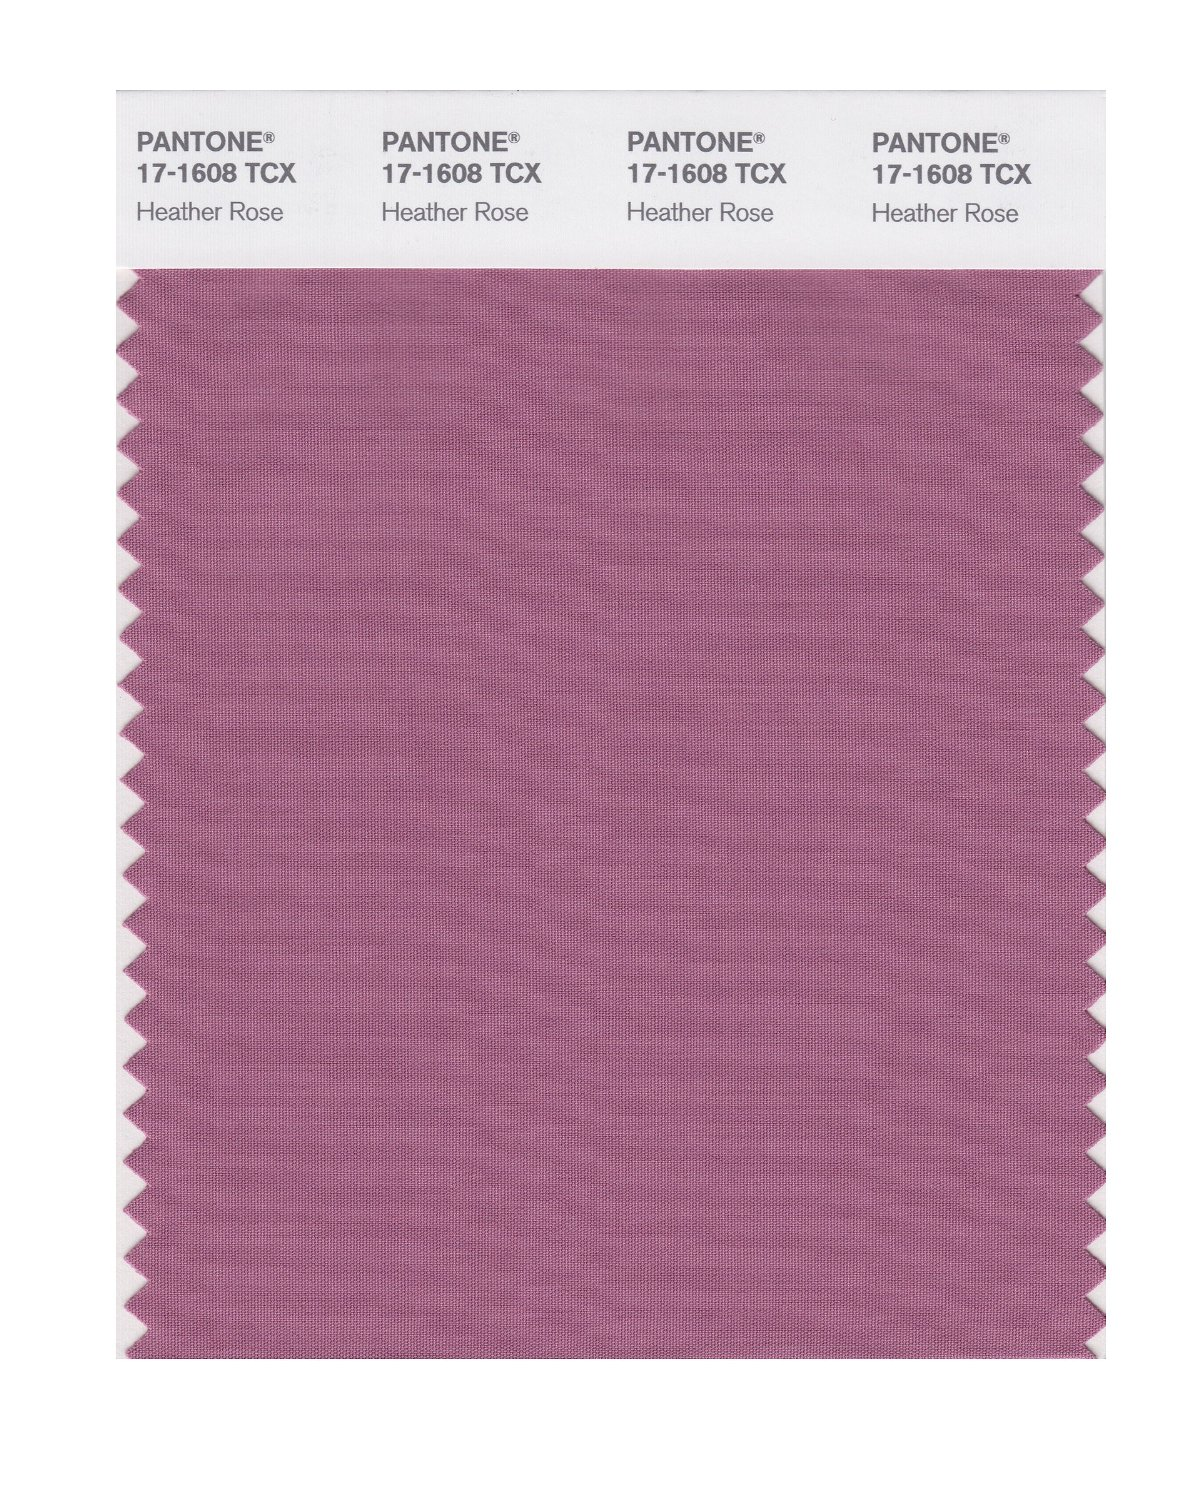 Pantone Smart Swatch 17-1608 Heather Rose